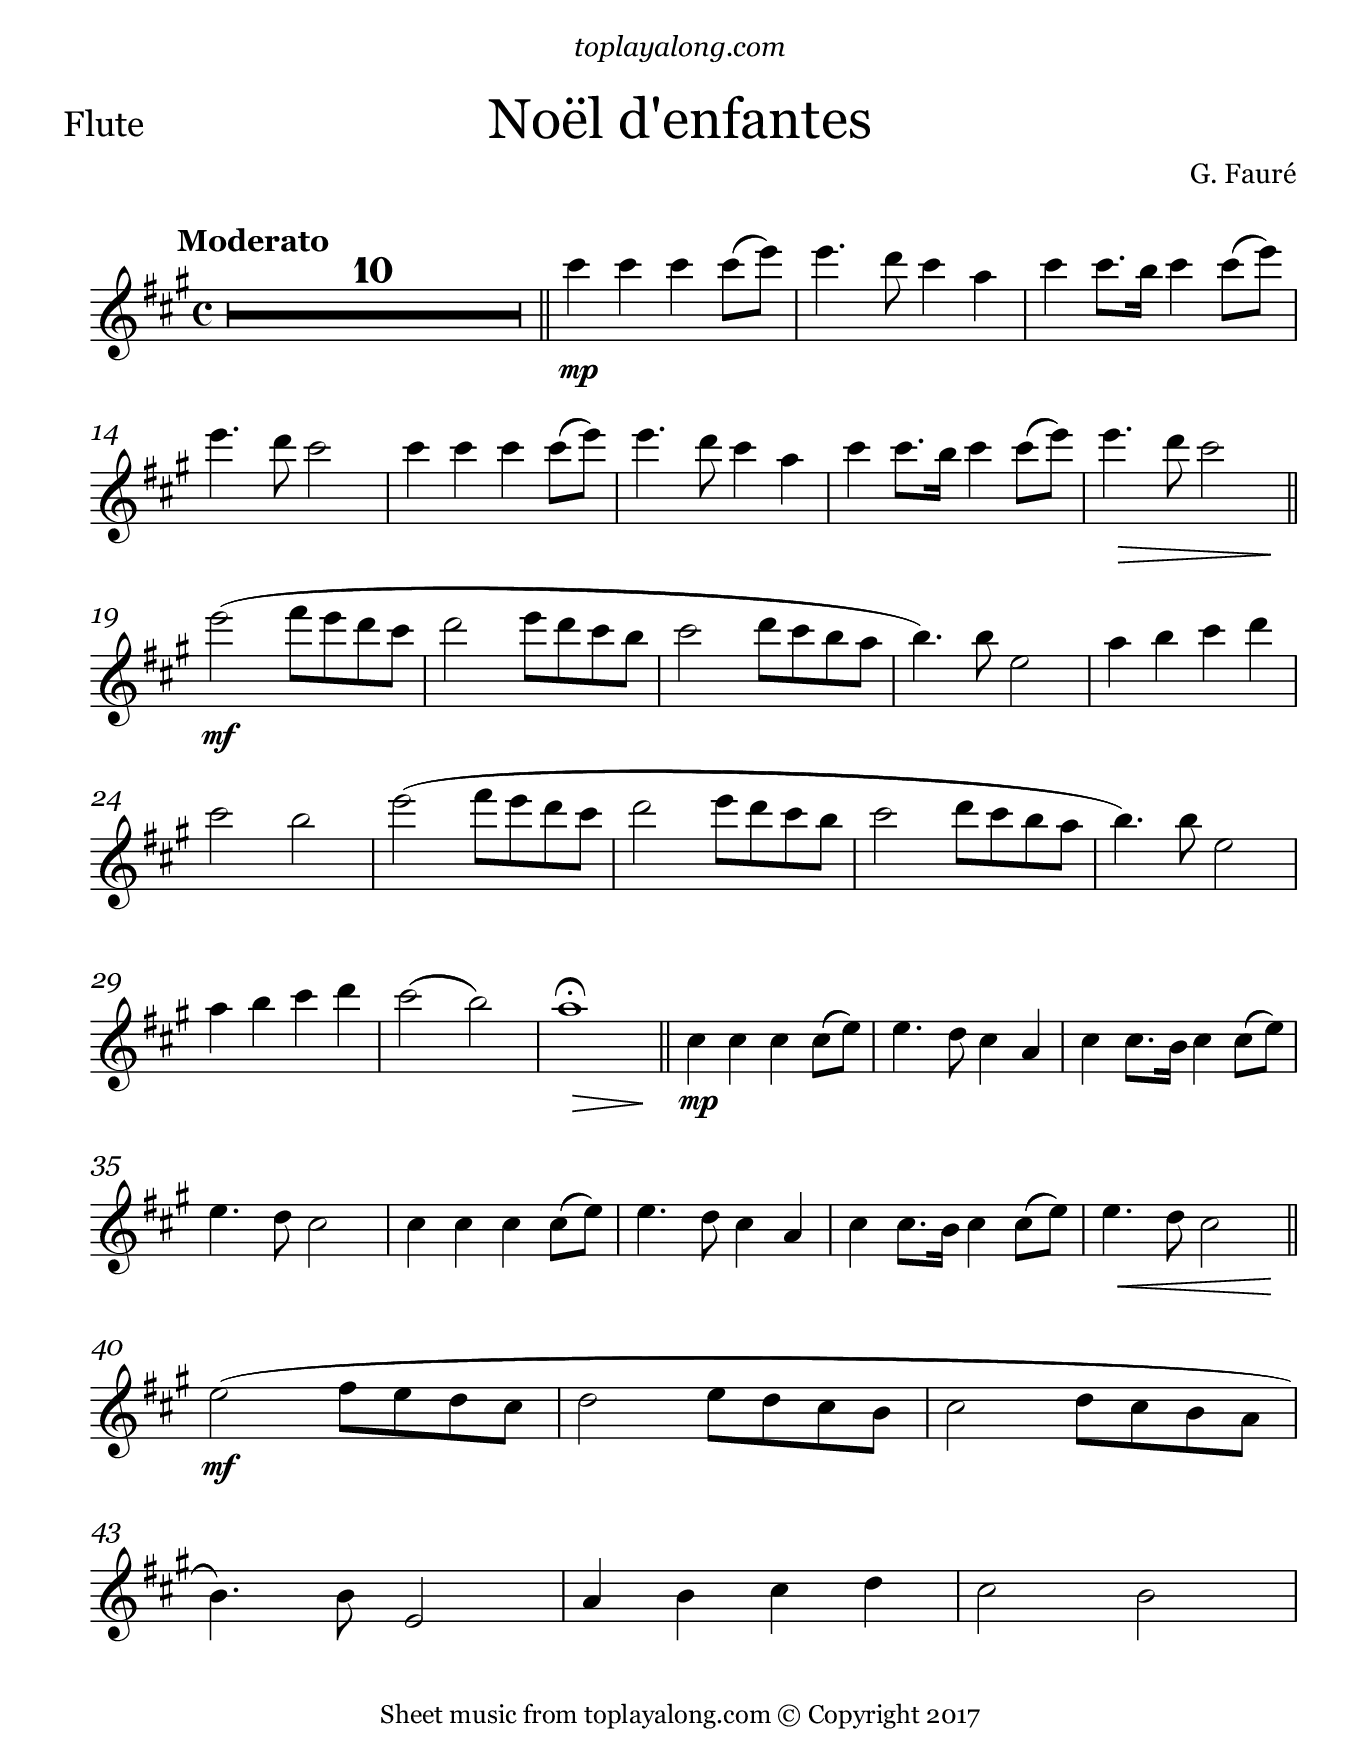 Noël d'enfants by Fauré. Sheet music for Flute, page 1.